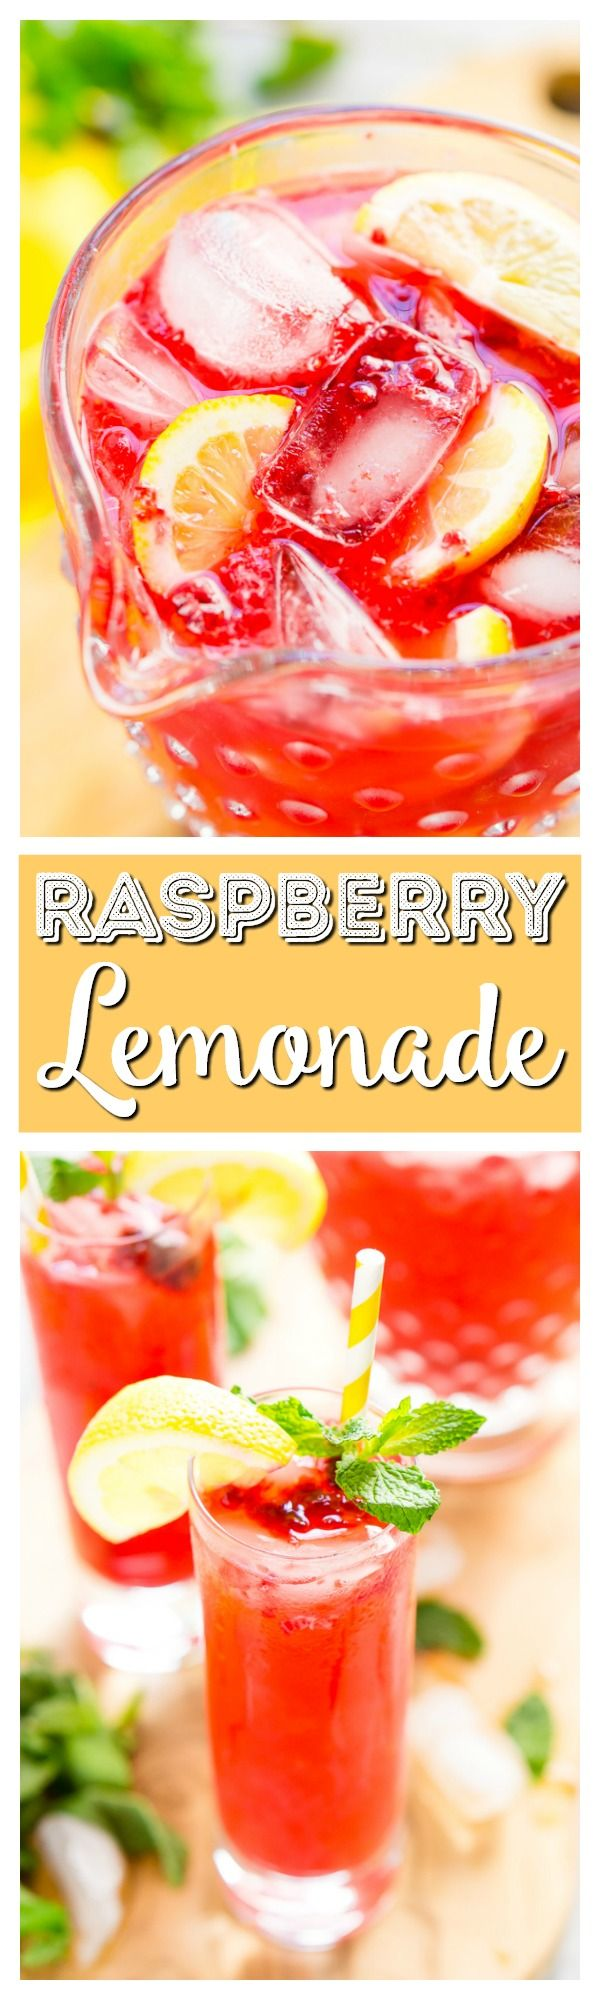 This Sparkling Raspberry Lemonade is a delicious and refreshing fruity drink that's made with raspberries, lemons, simple syrup, and club soda. via @sugarandsoulco